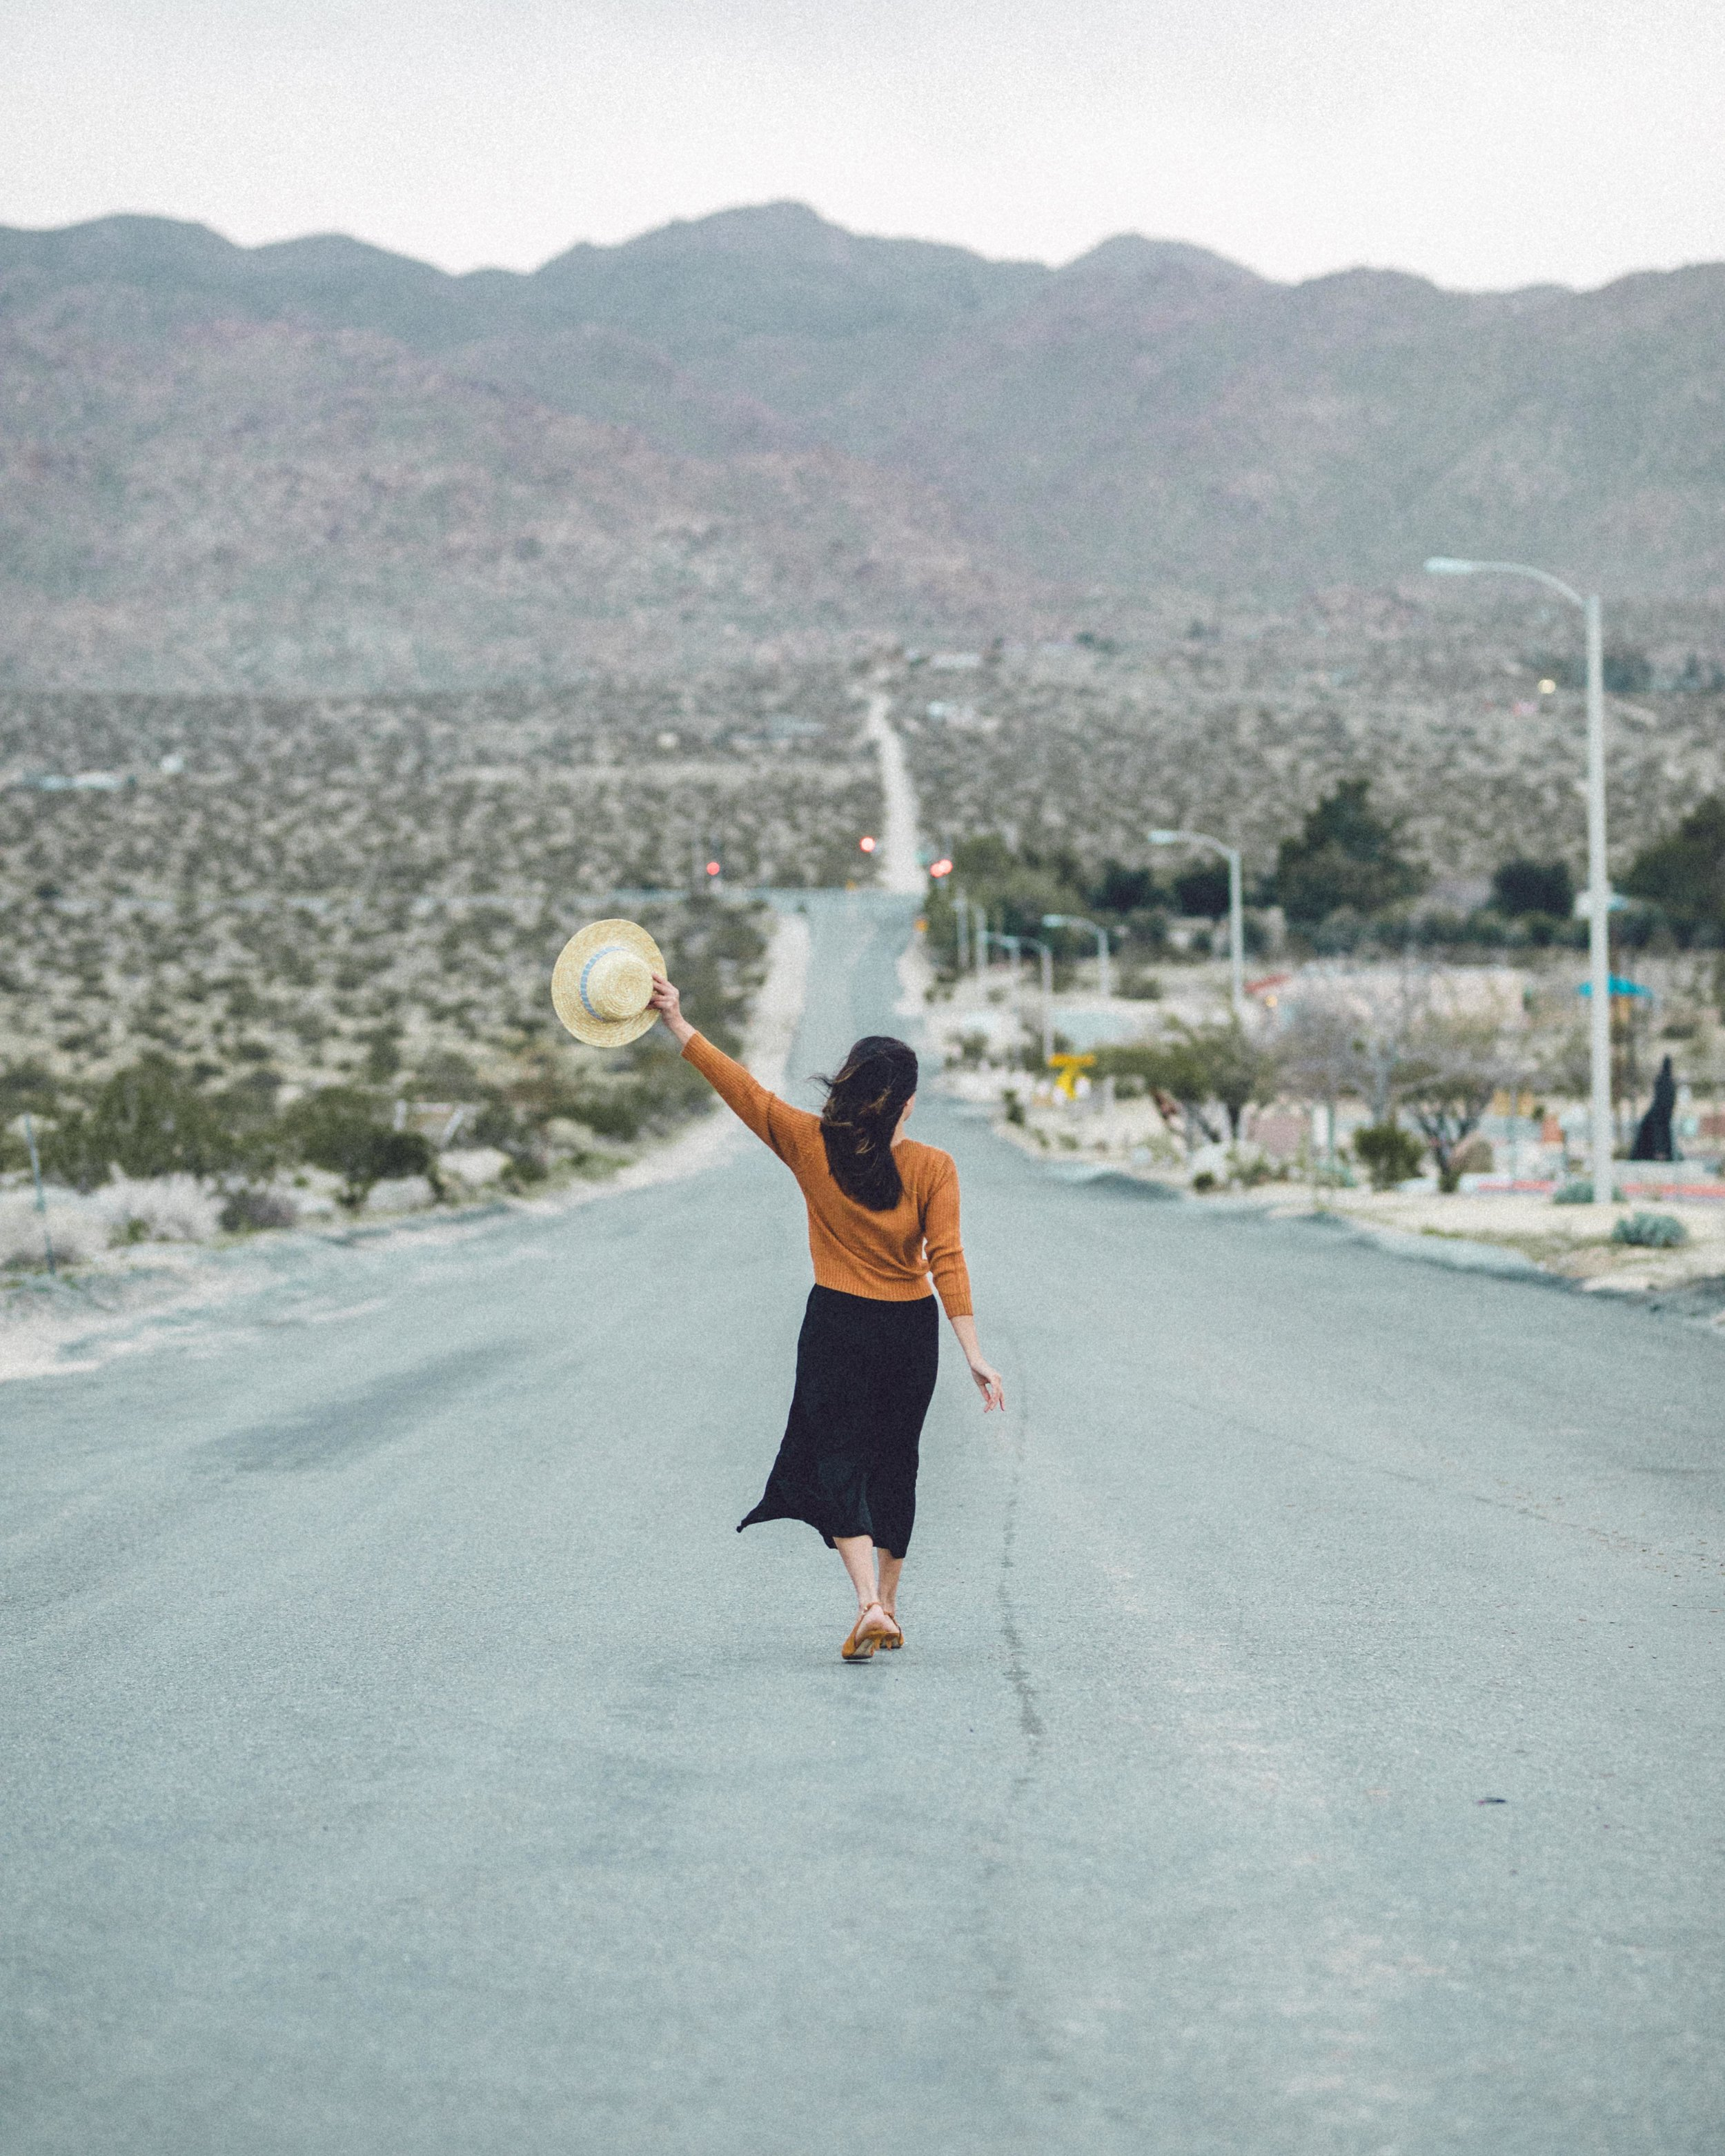 Rachel Off Duty: How to Spend 1 Day in the Central California Desert - Yucca Valley